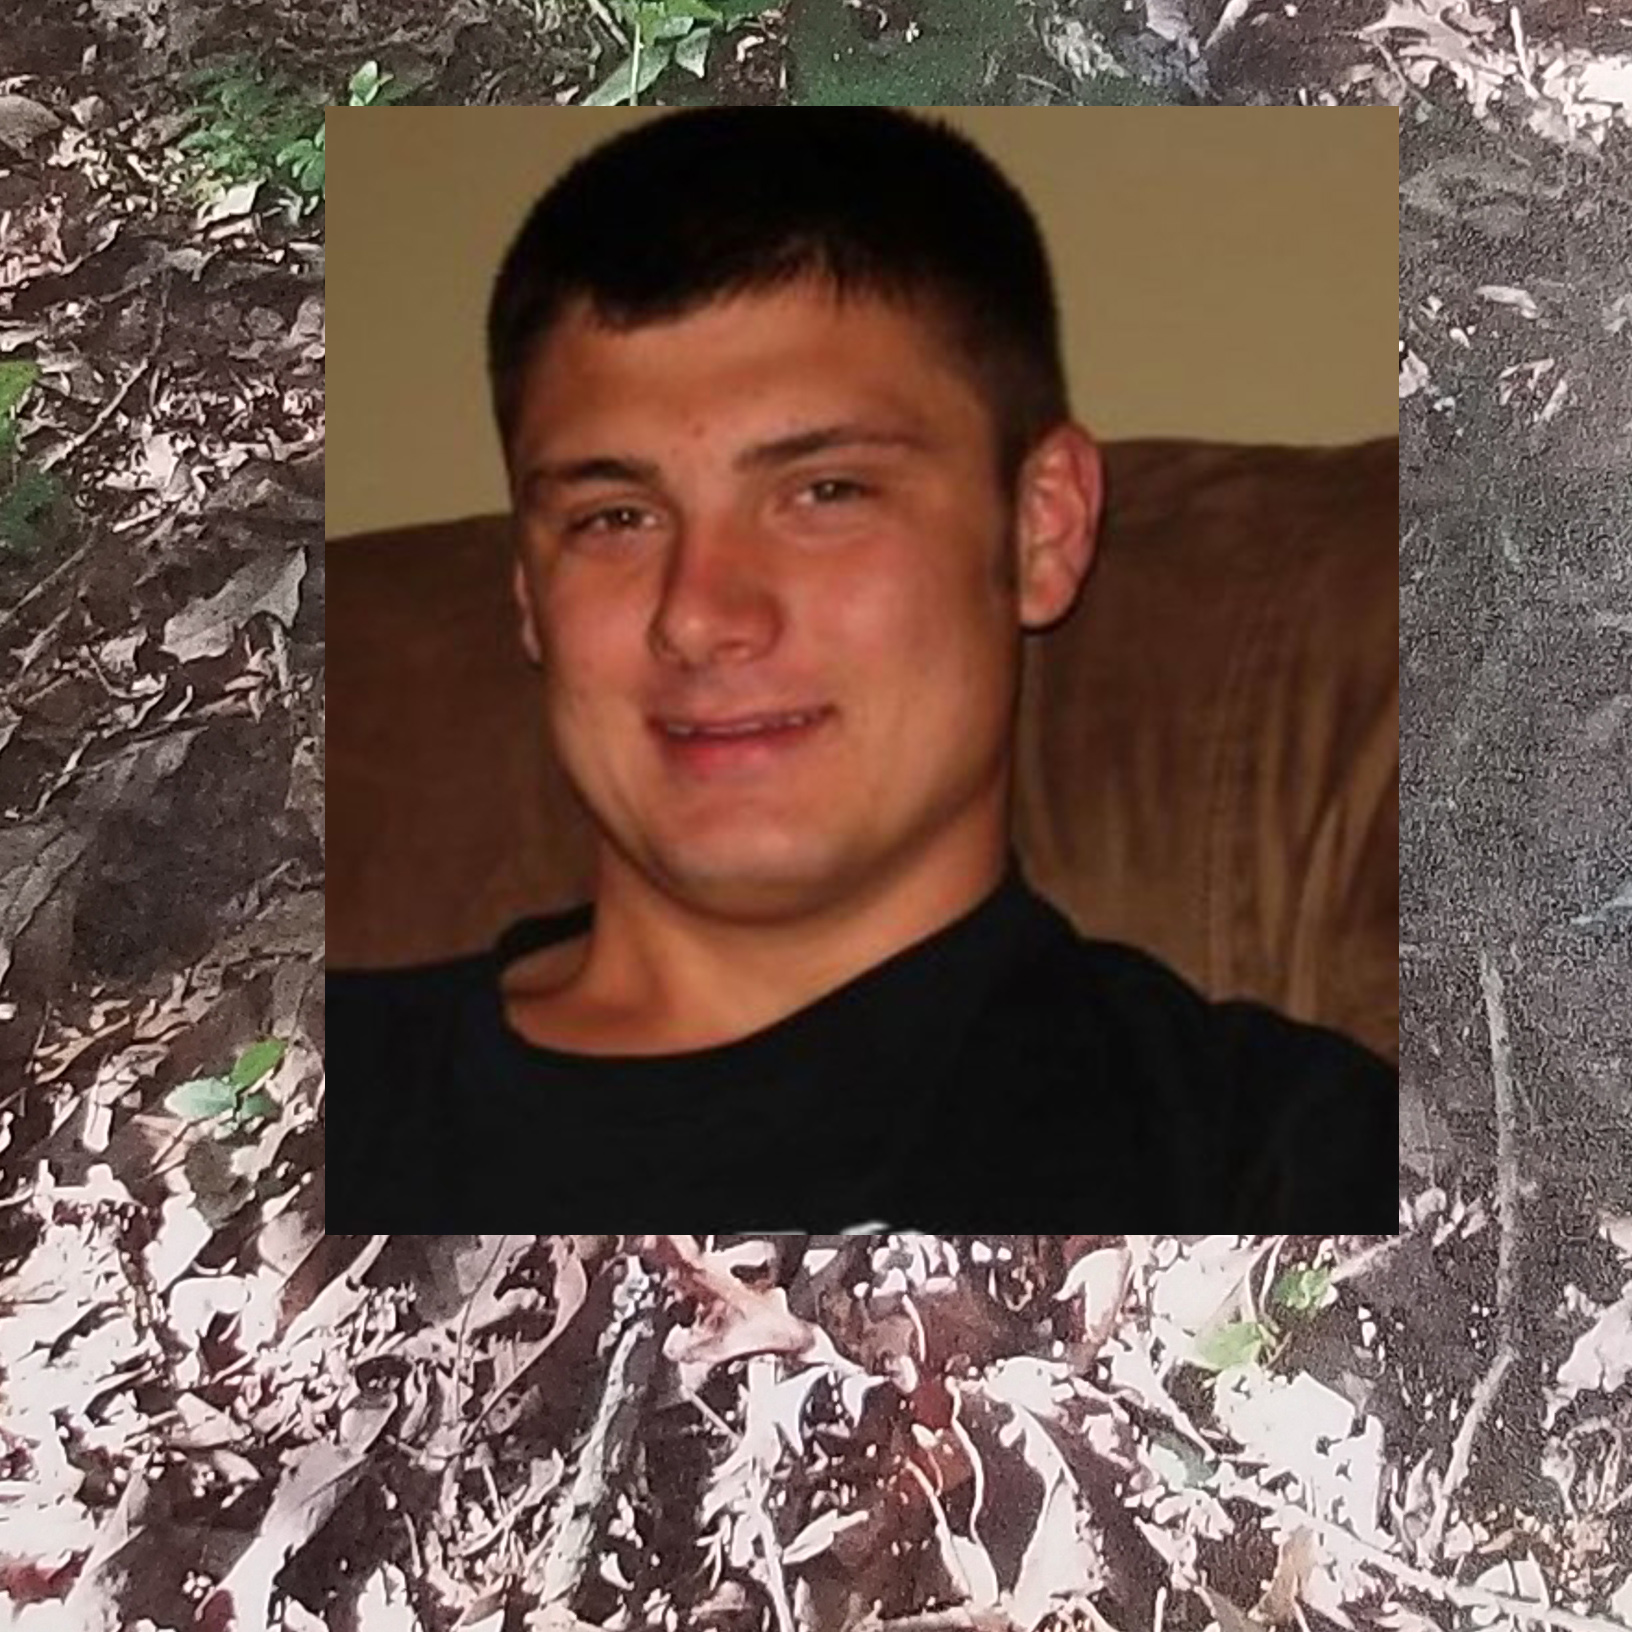 Rumors and murder in Jackson County: The Disappearance of Josh Adams